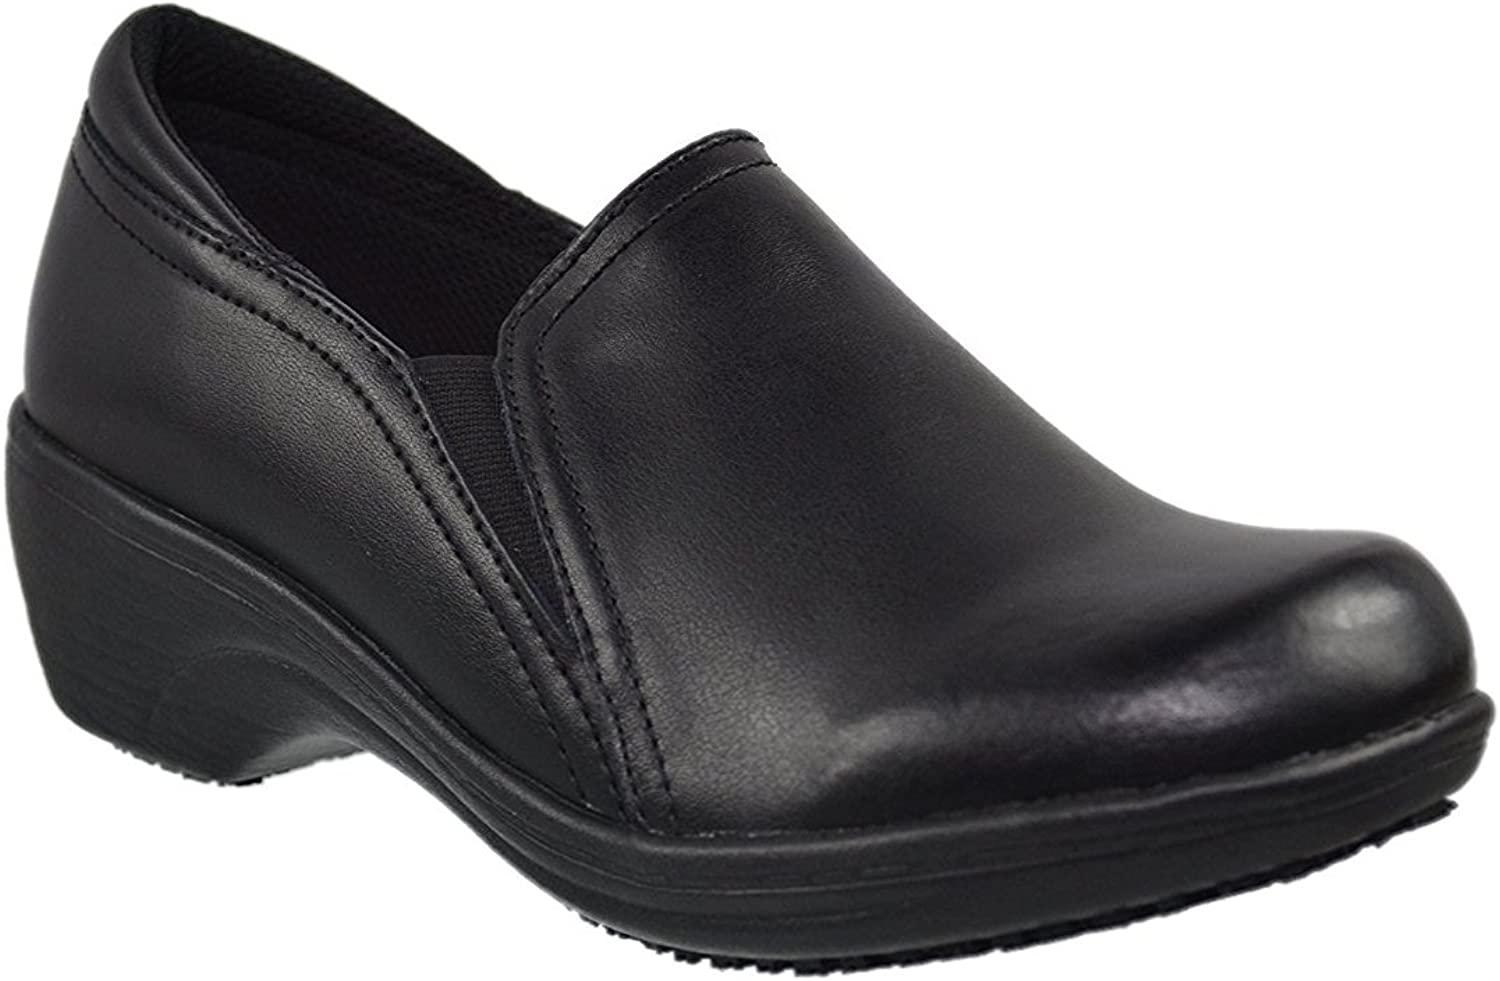 Laforst Darcy 7400 Womens Work Slip Resistant Heeled Slip On shoes